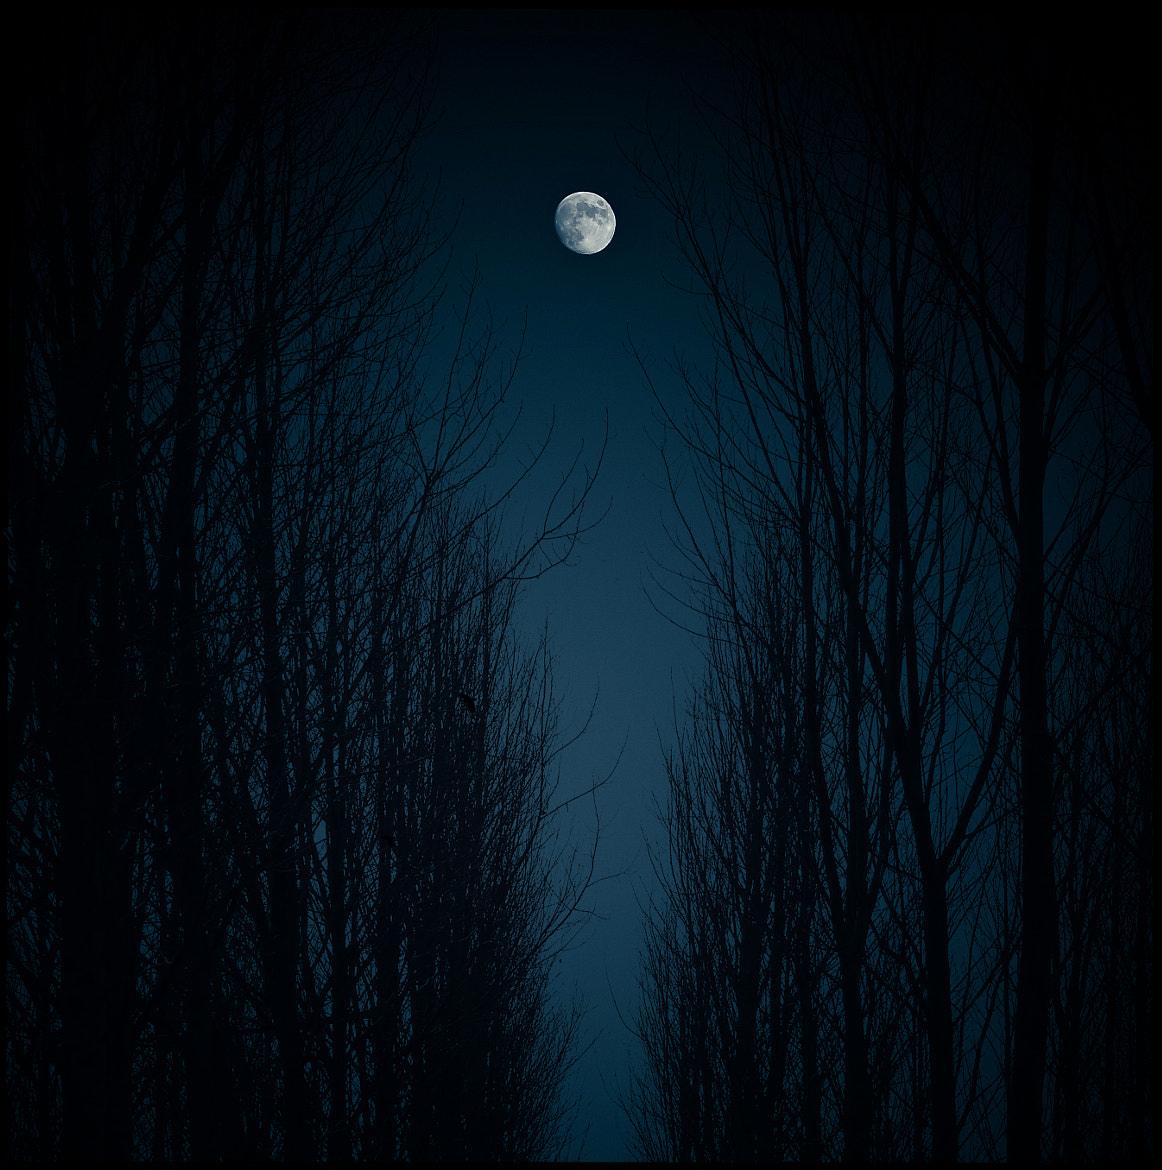 Photograph Moonlight by Luis Mariano González on 500px